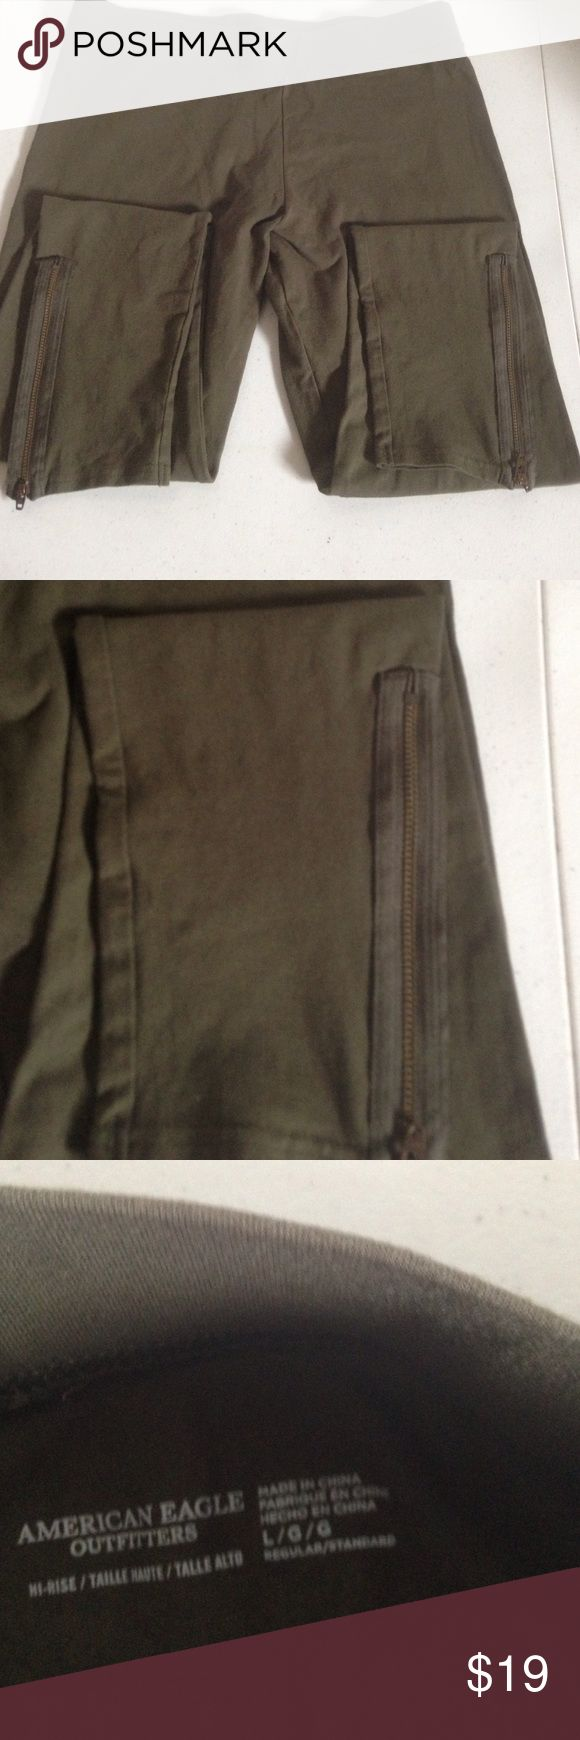 American Eagle Outfitters Hi-Rise Leggings Dark Green Leggings with zipper detail at the ankle American Eagle Outfitters Pants Leggings